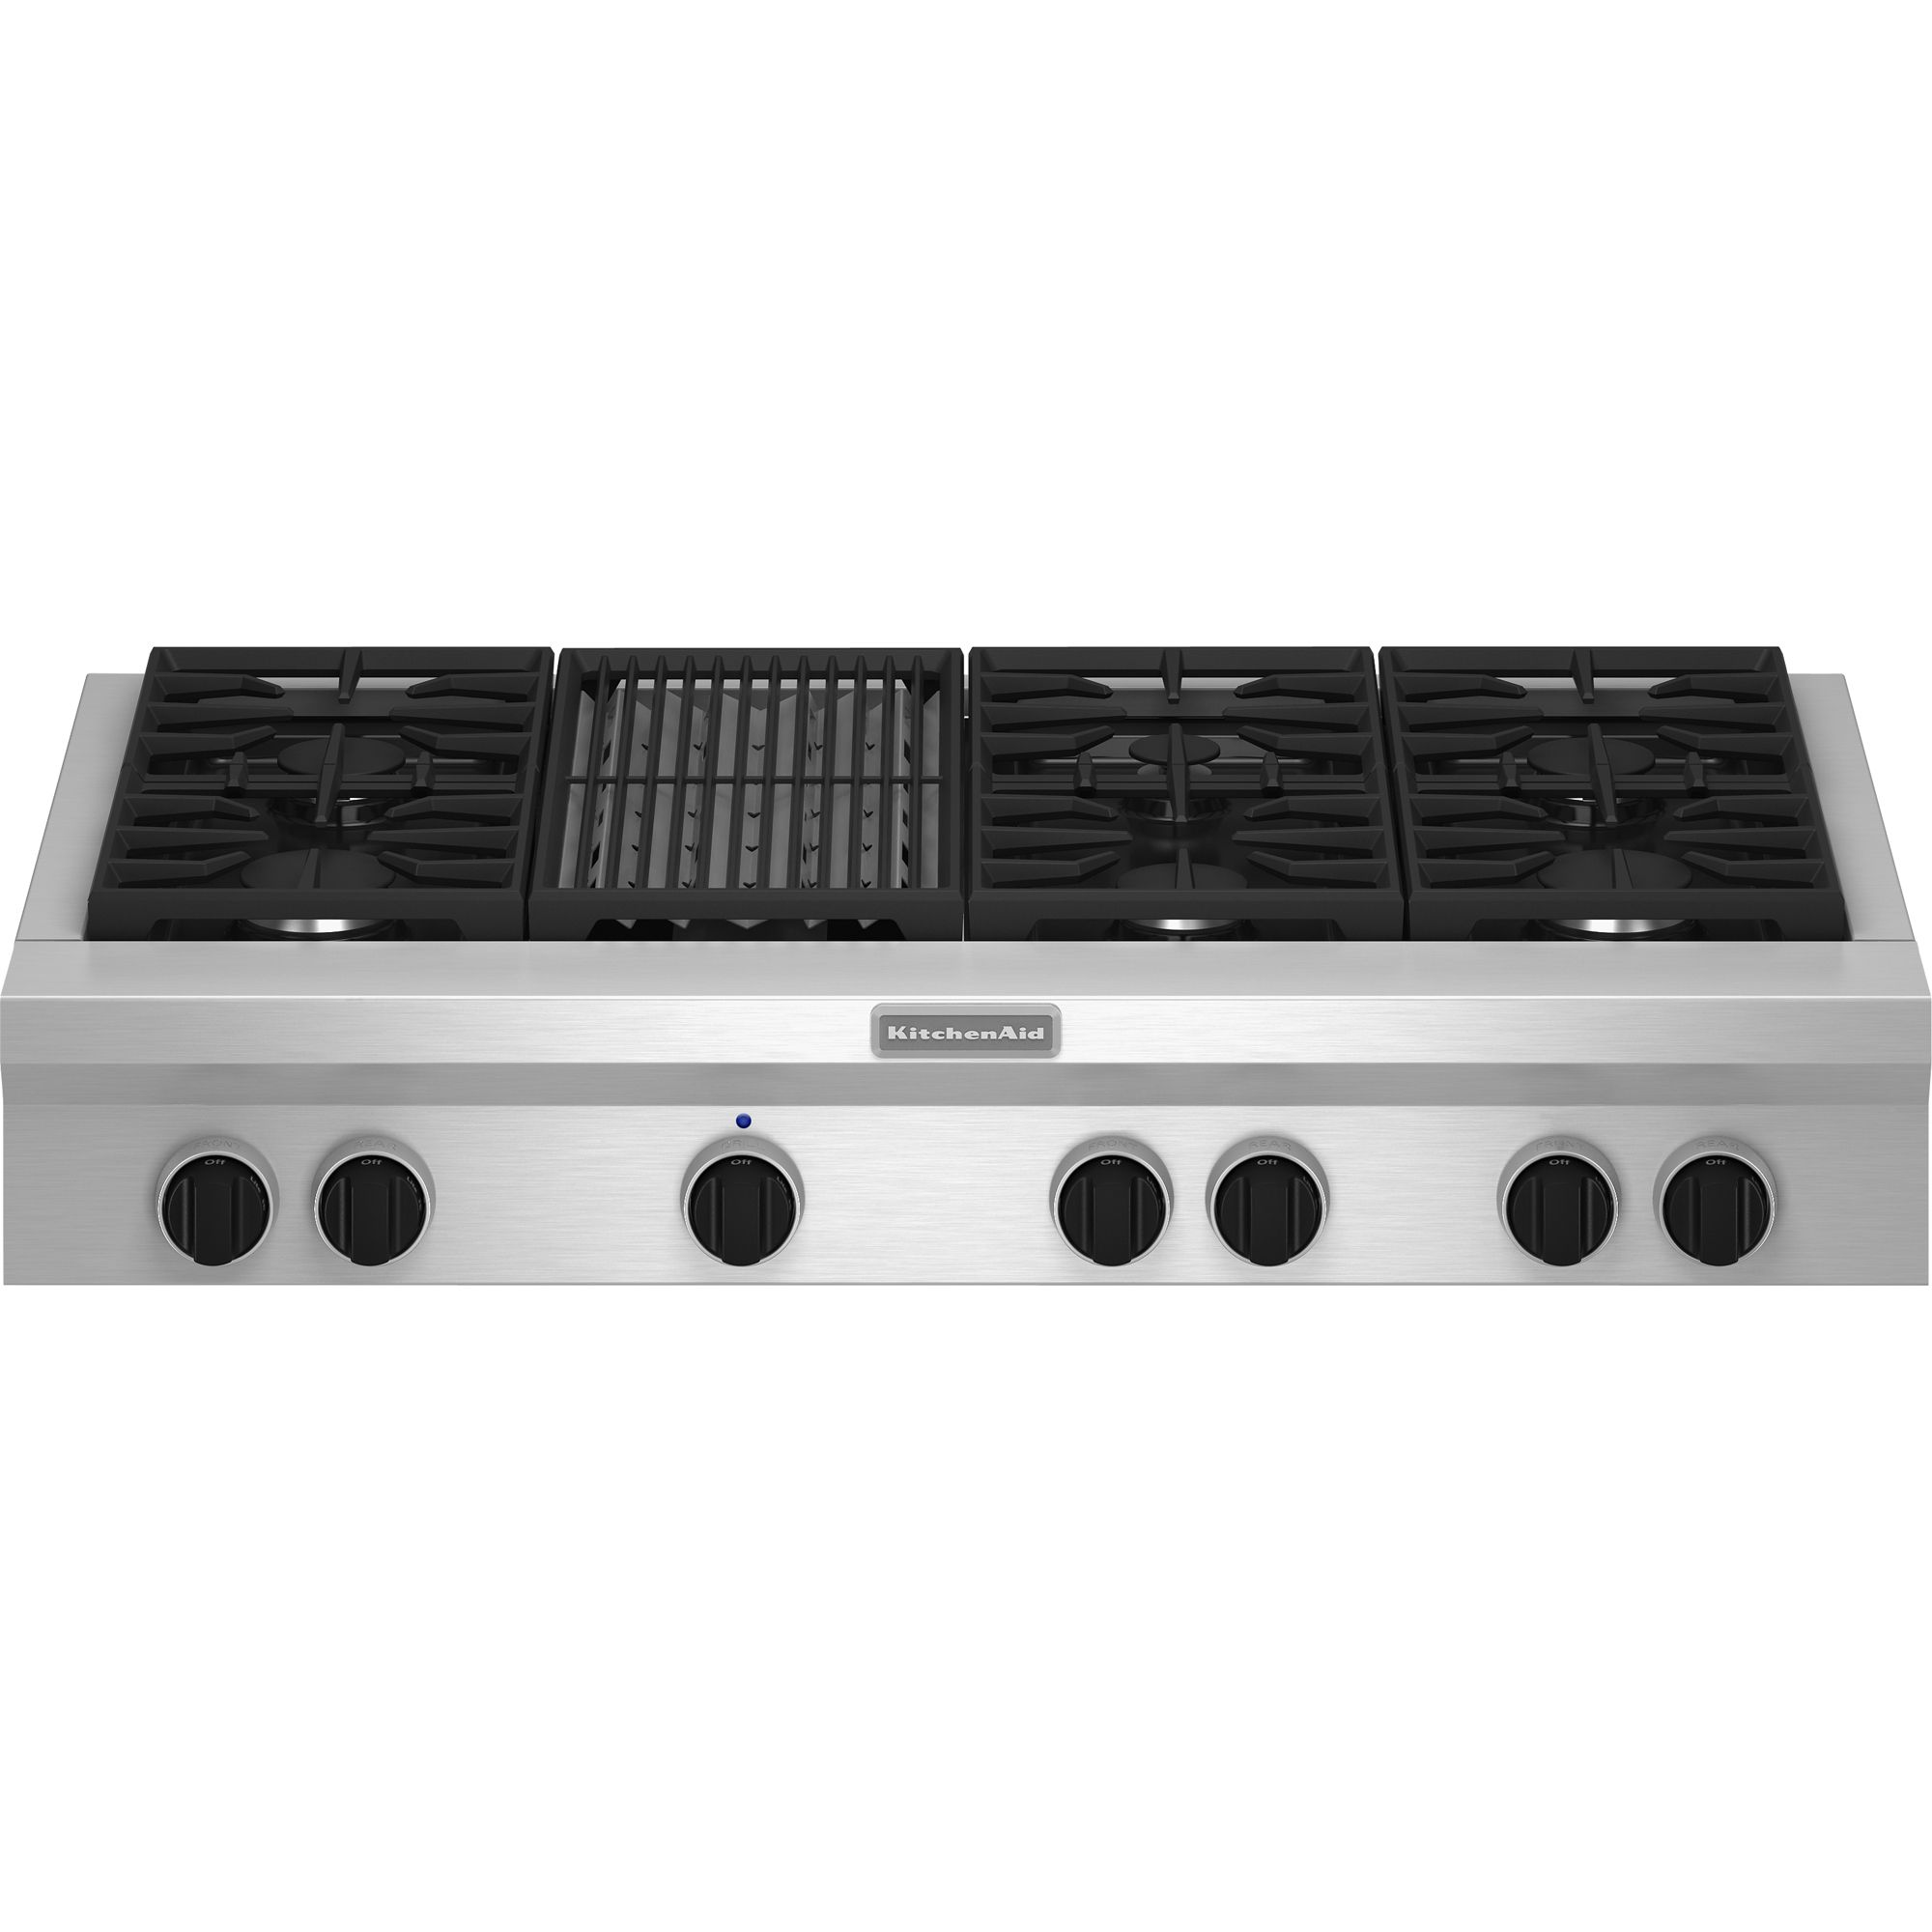 KitchenAid KGCU482VSS Pro-Style® 48 Gas Cooktop Plus Grill